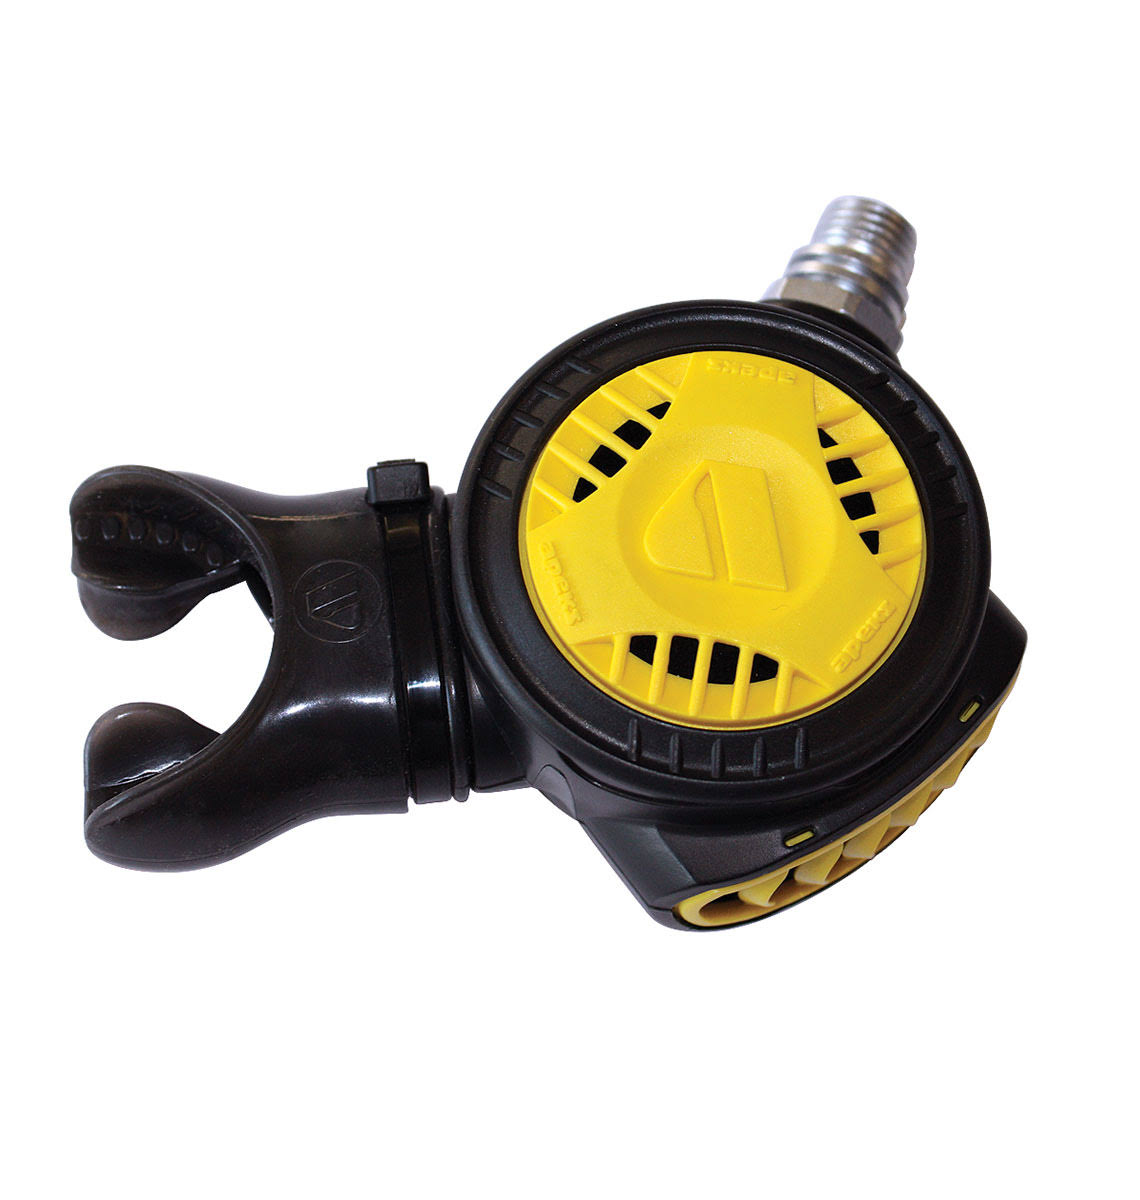 Apeks by Aqua Lung Egress Octo Regulator